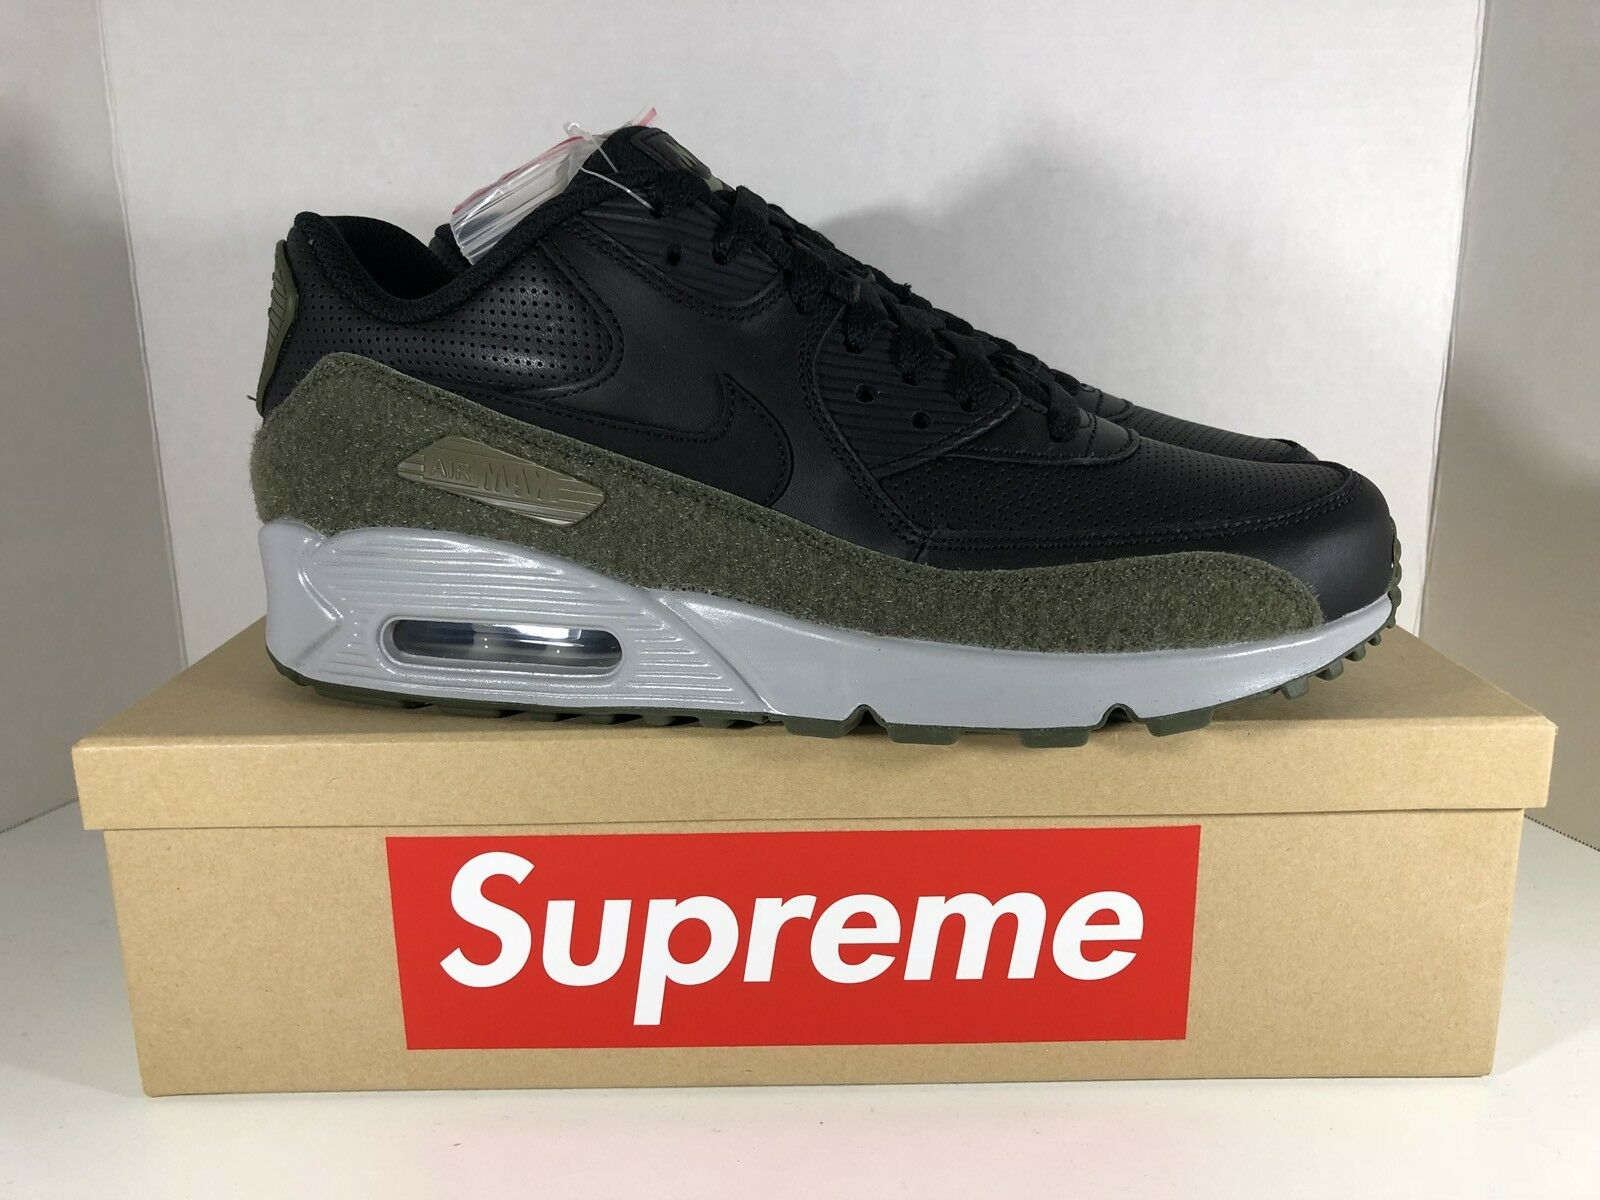 Nike air max 90 uomini hal patch nero medio verde oliva 41